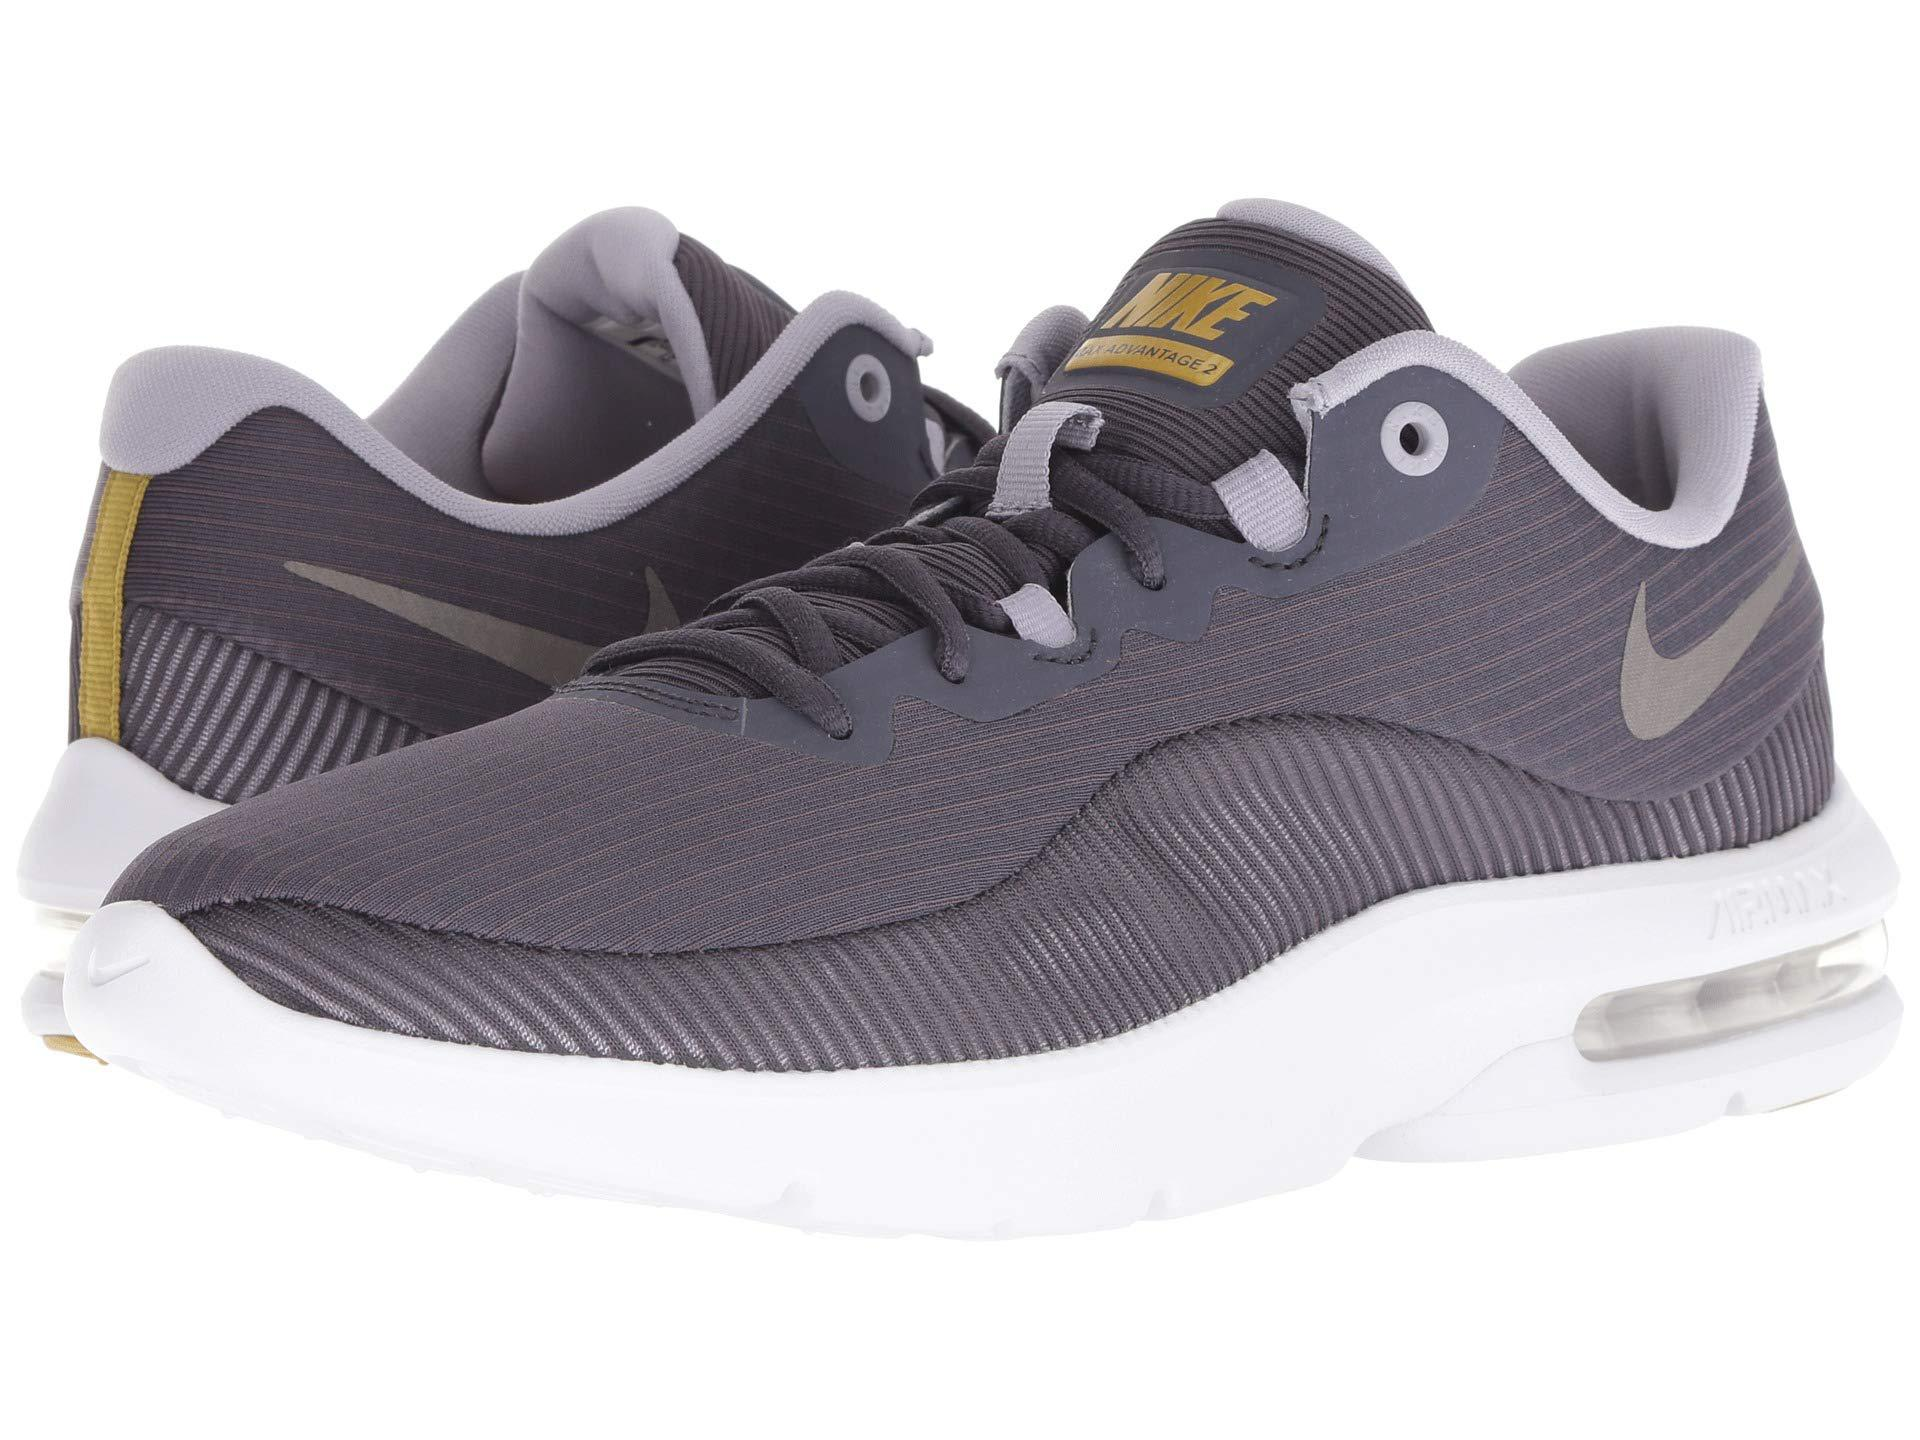 ec7ca5875e Nike Air Max Advantage 2 (cargo Khaki/peat Moss/medium Olive) Men's ...